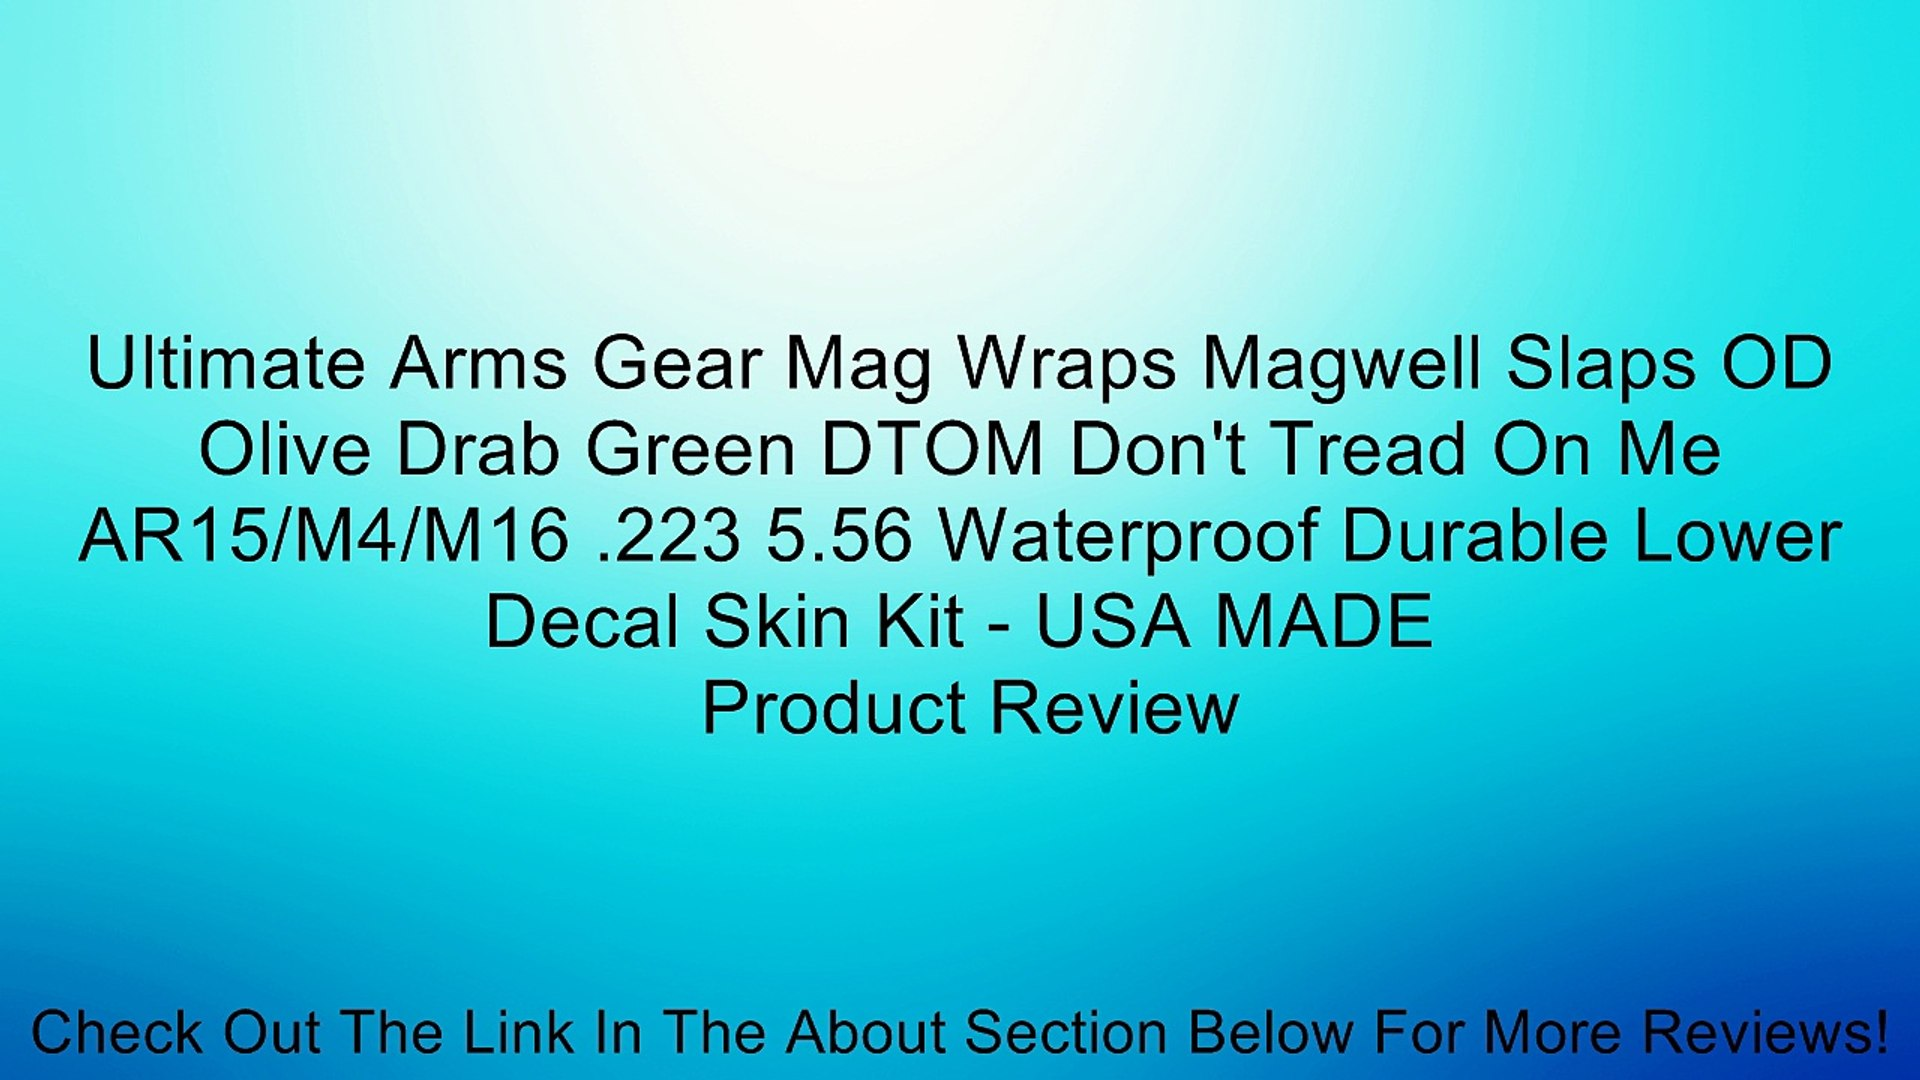 Ultimate Arms Gear Mag Wraps Magwell Slaps OD Olive Drab Green DTOM Don't Tread On Me AR15/M4/M